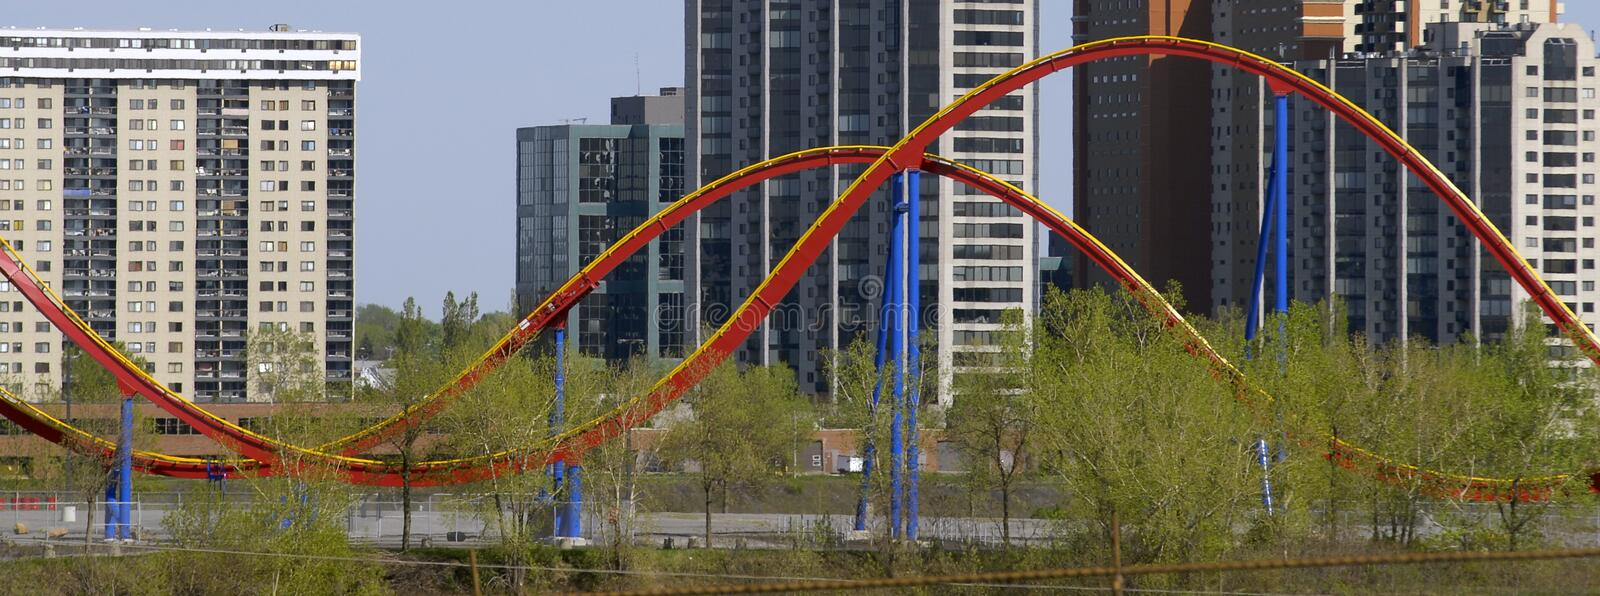 Download Roller Coaster & Buildings Royalty Free Stock Photos - Image: 2414308